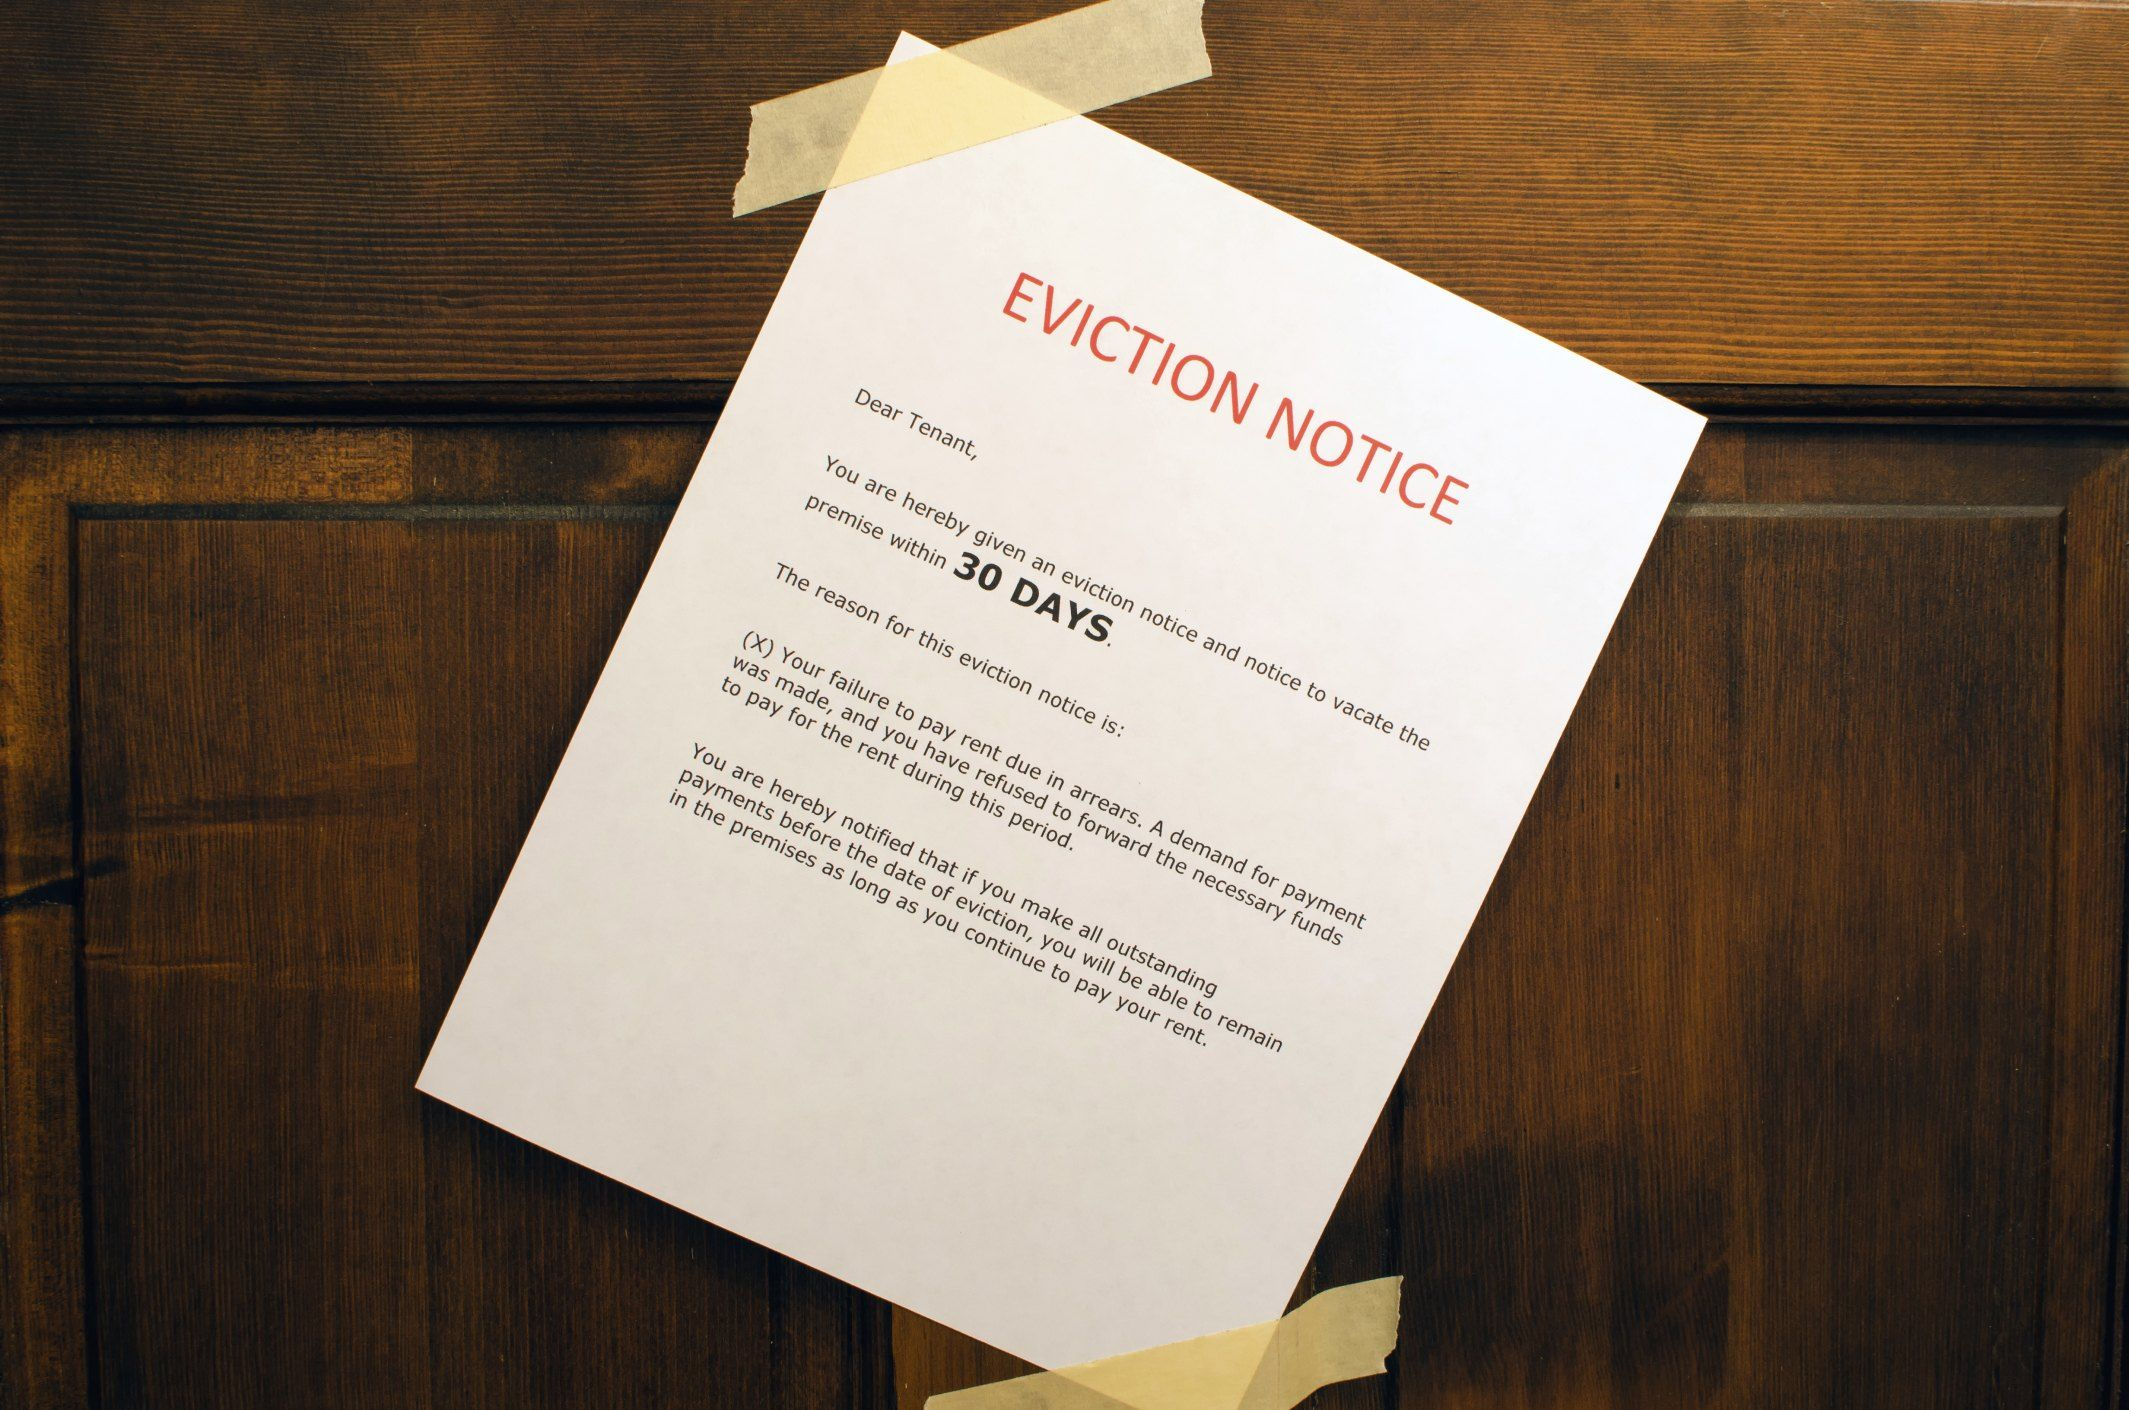 How to Evict a Family Member From a House Eviction